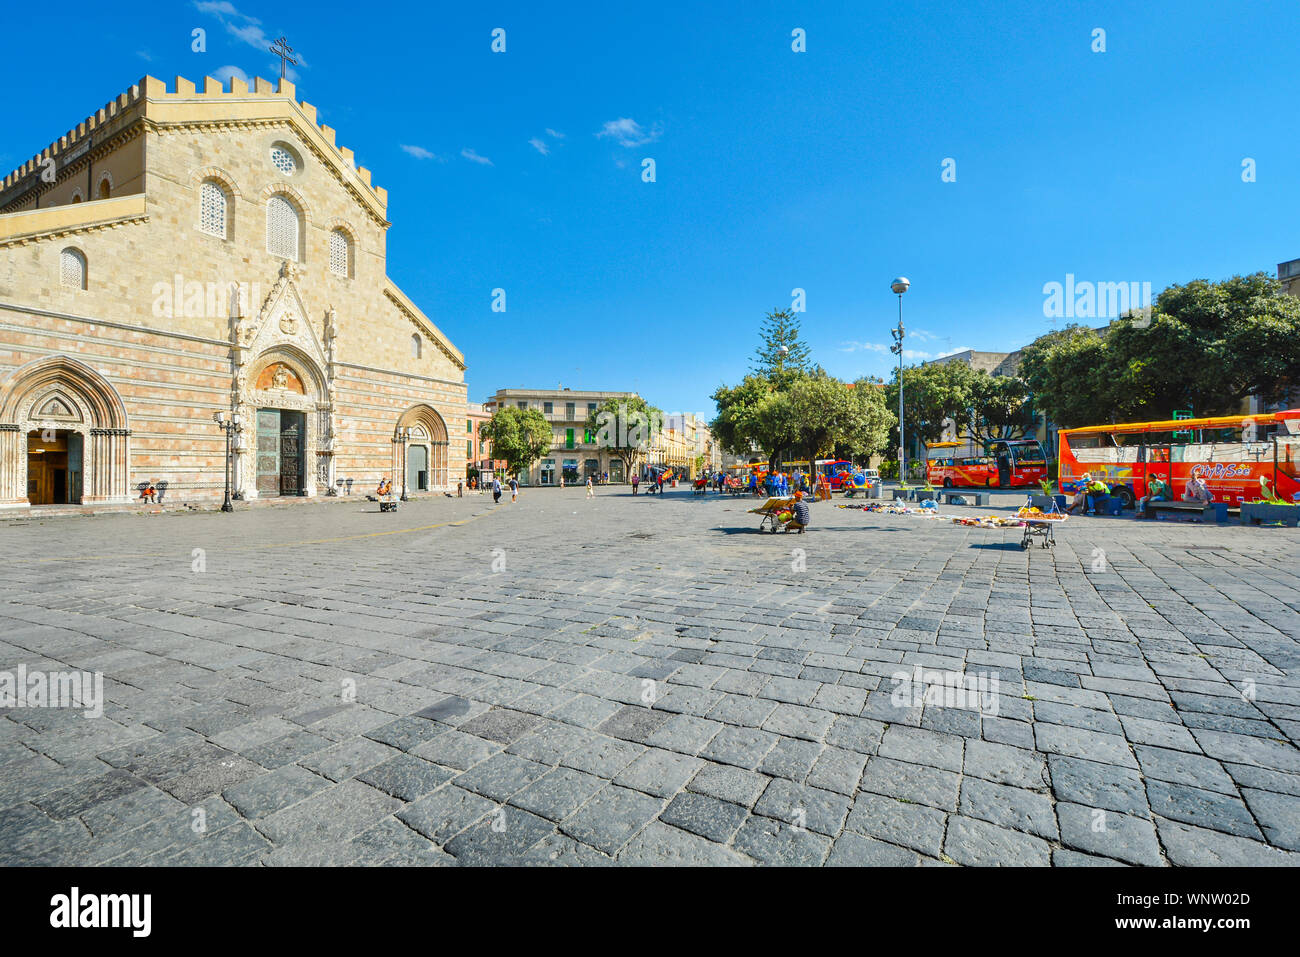 Tourists visit the Messina Cathedral and it's ornate bell tower on the Piazza Duomo in the Sicilian city of Messina, Italy. Stock Photo